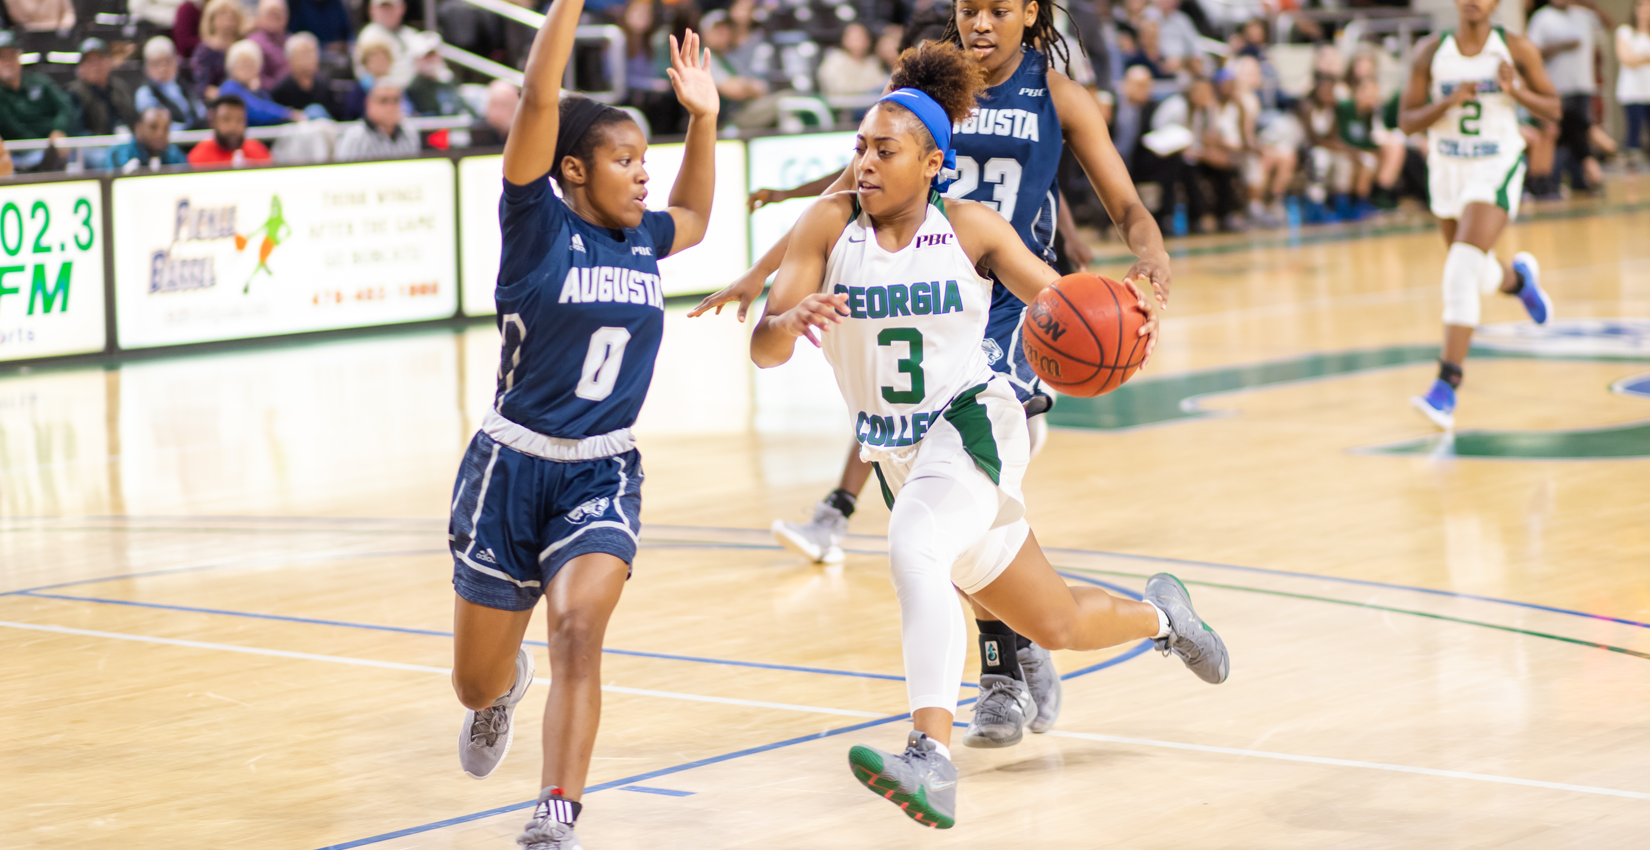 Bobcat Women's Basketball Starts New Season Friday